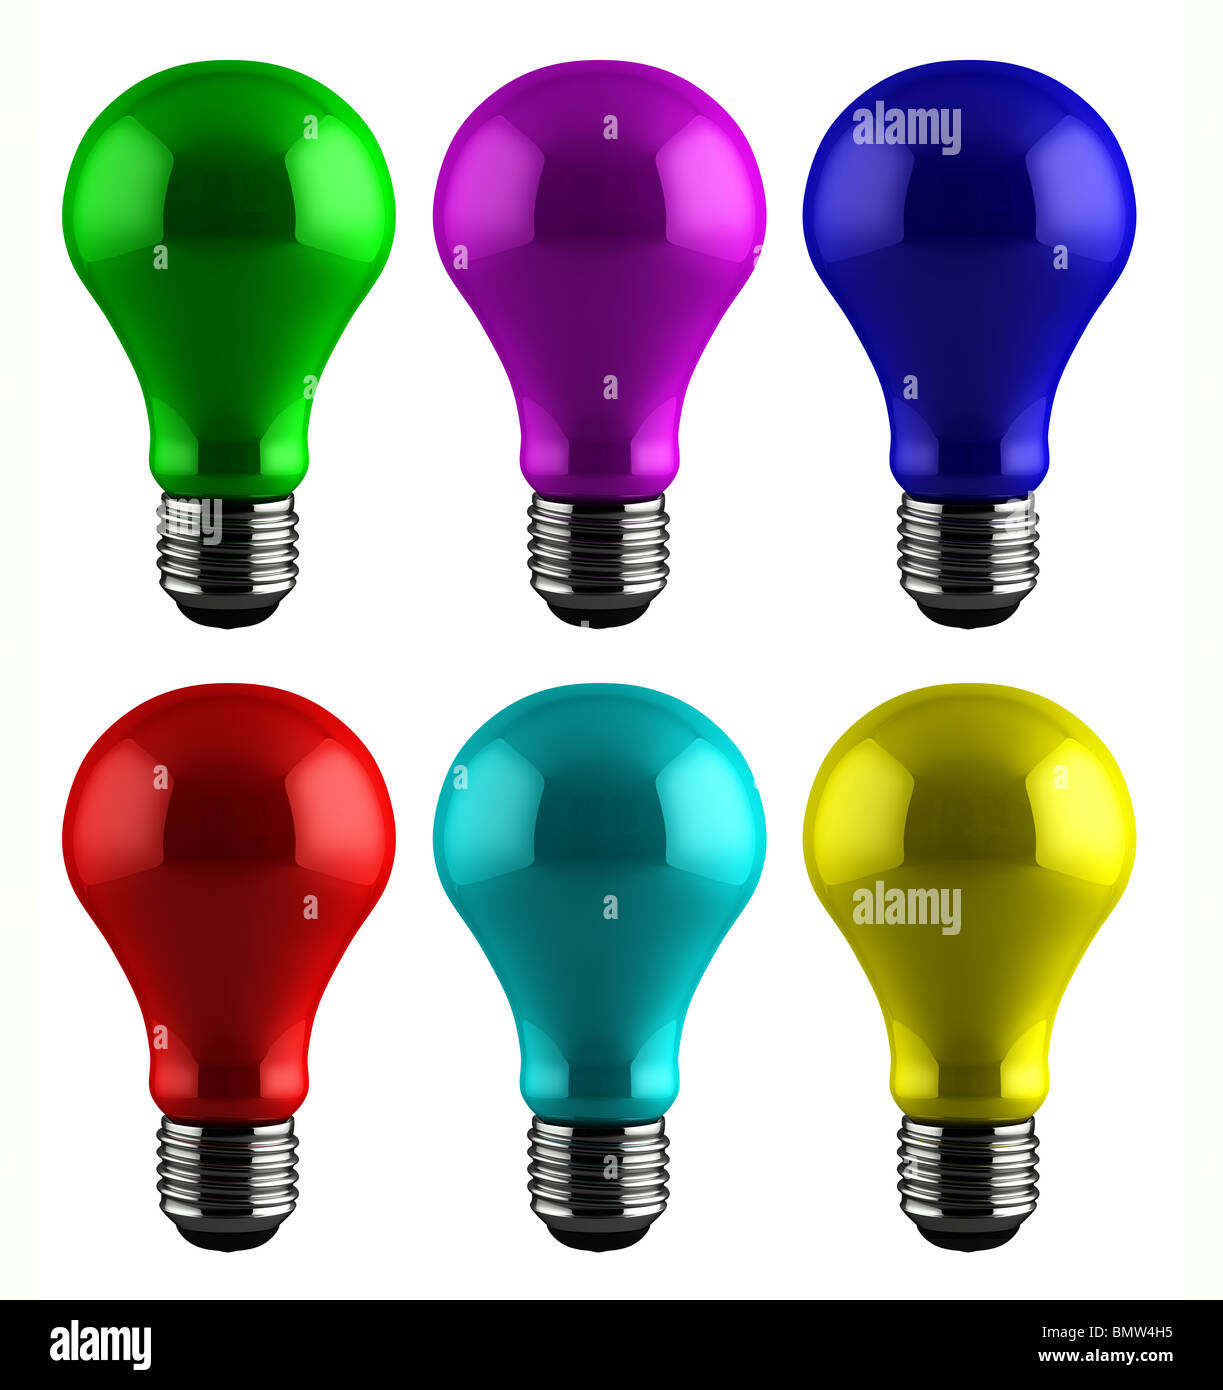 Colorful light bulbs - Stock Image